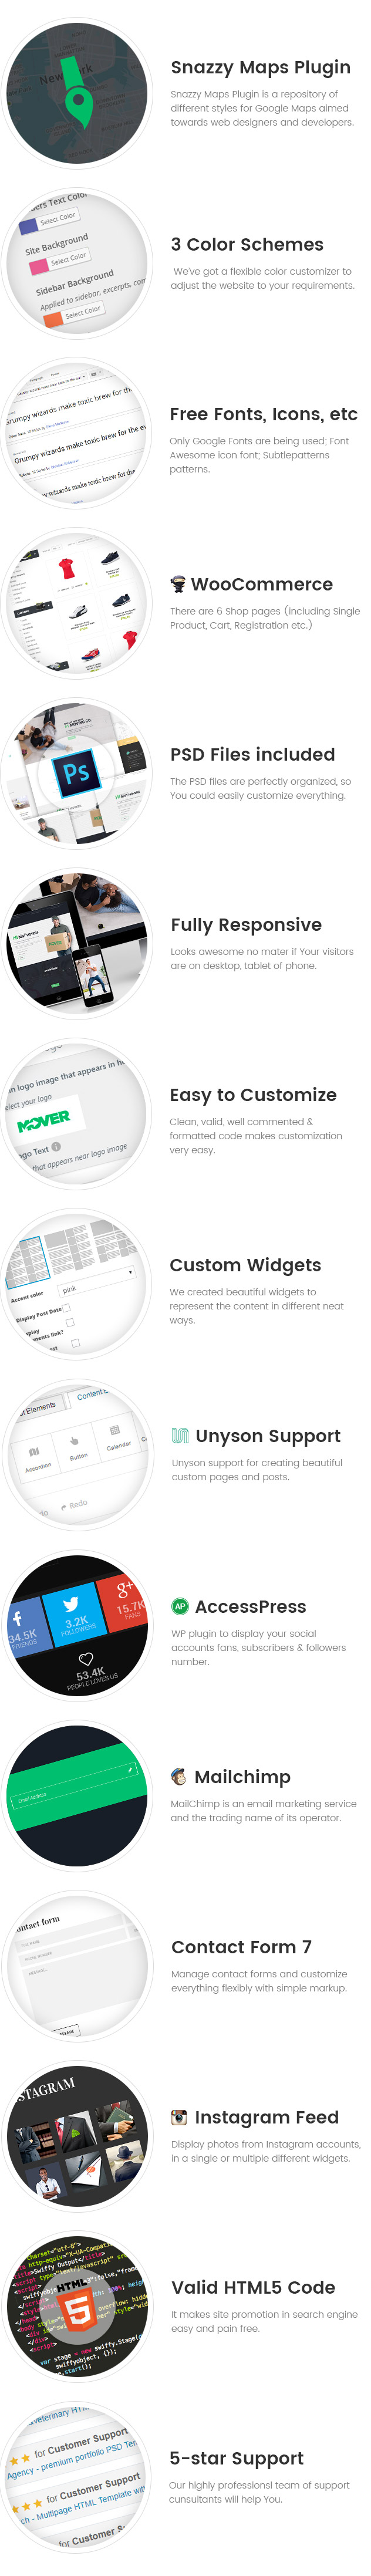 Mover - Delivery Company WordPress Theme